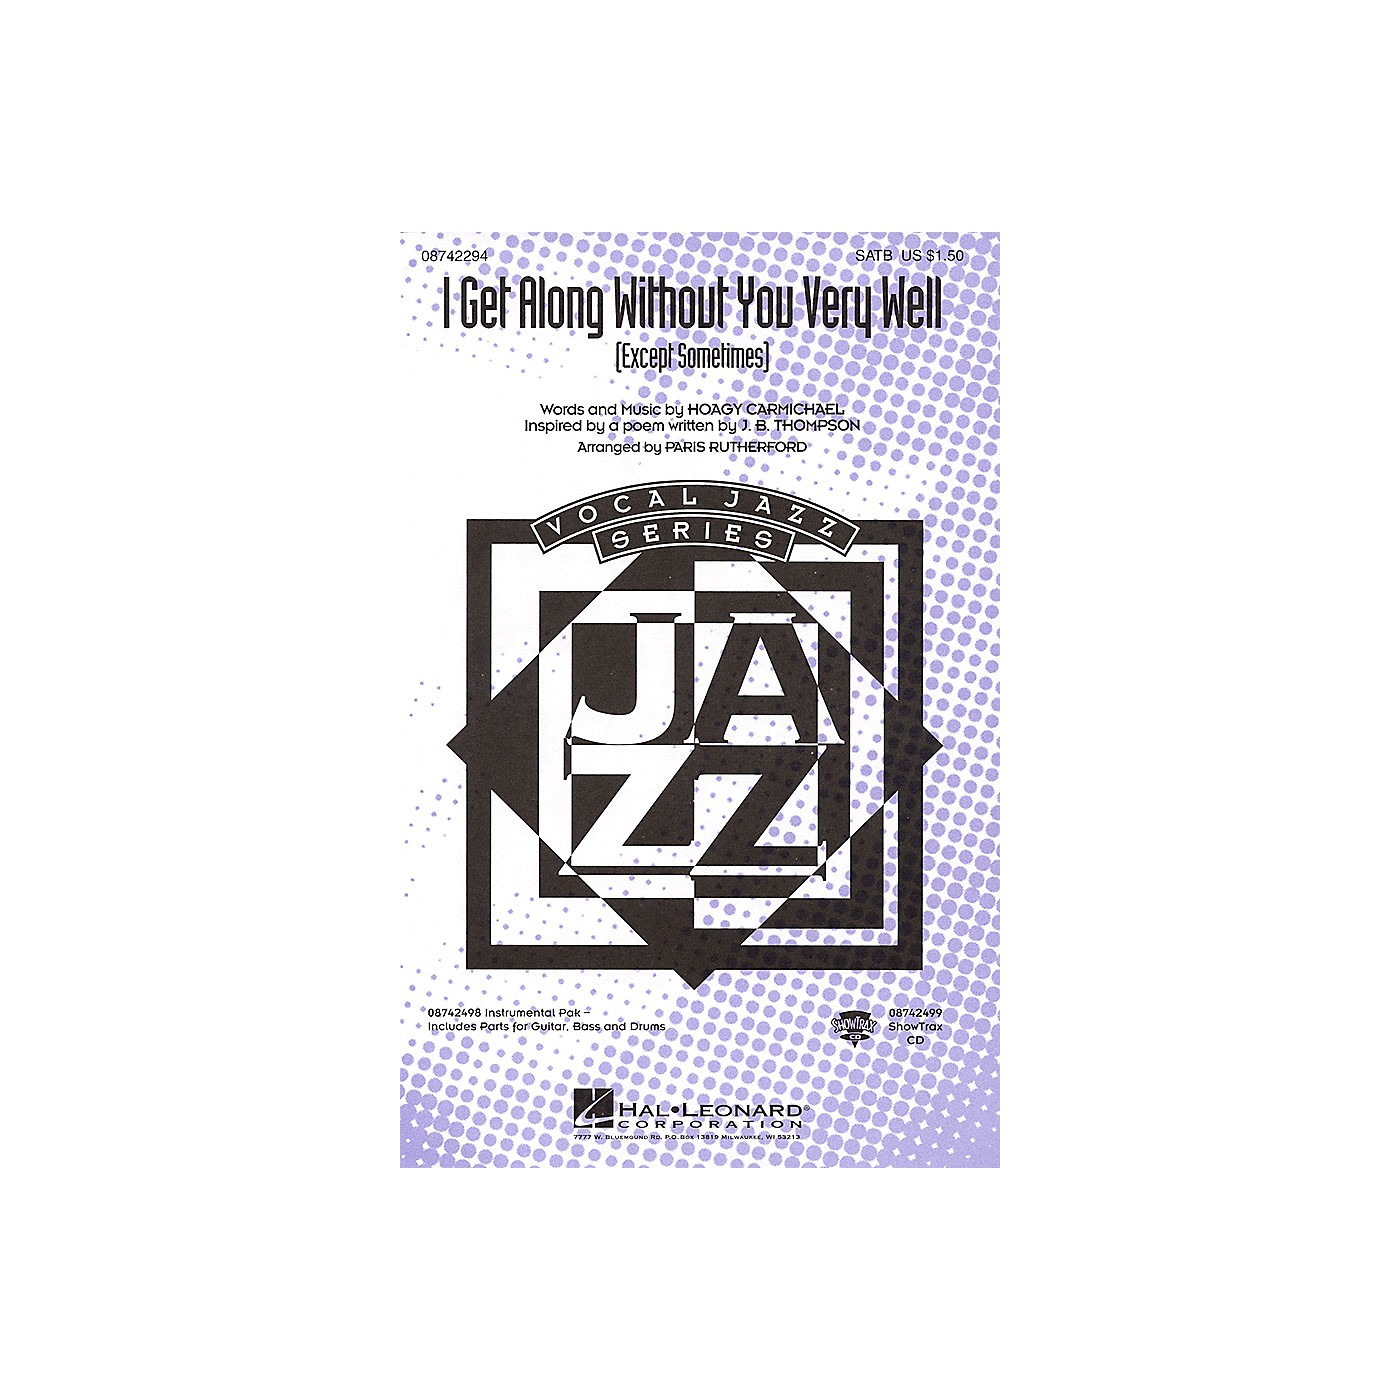 Hal Leonard I Get Along Without You Very Well (Except Sometimes) SATB arranged by Paris Rutherford thumbnail